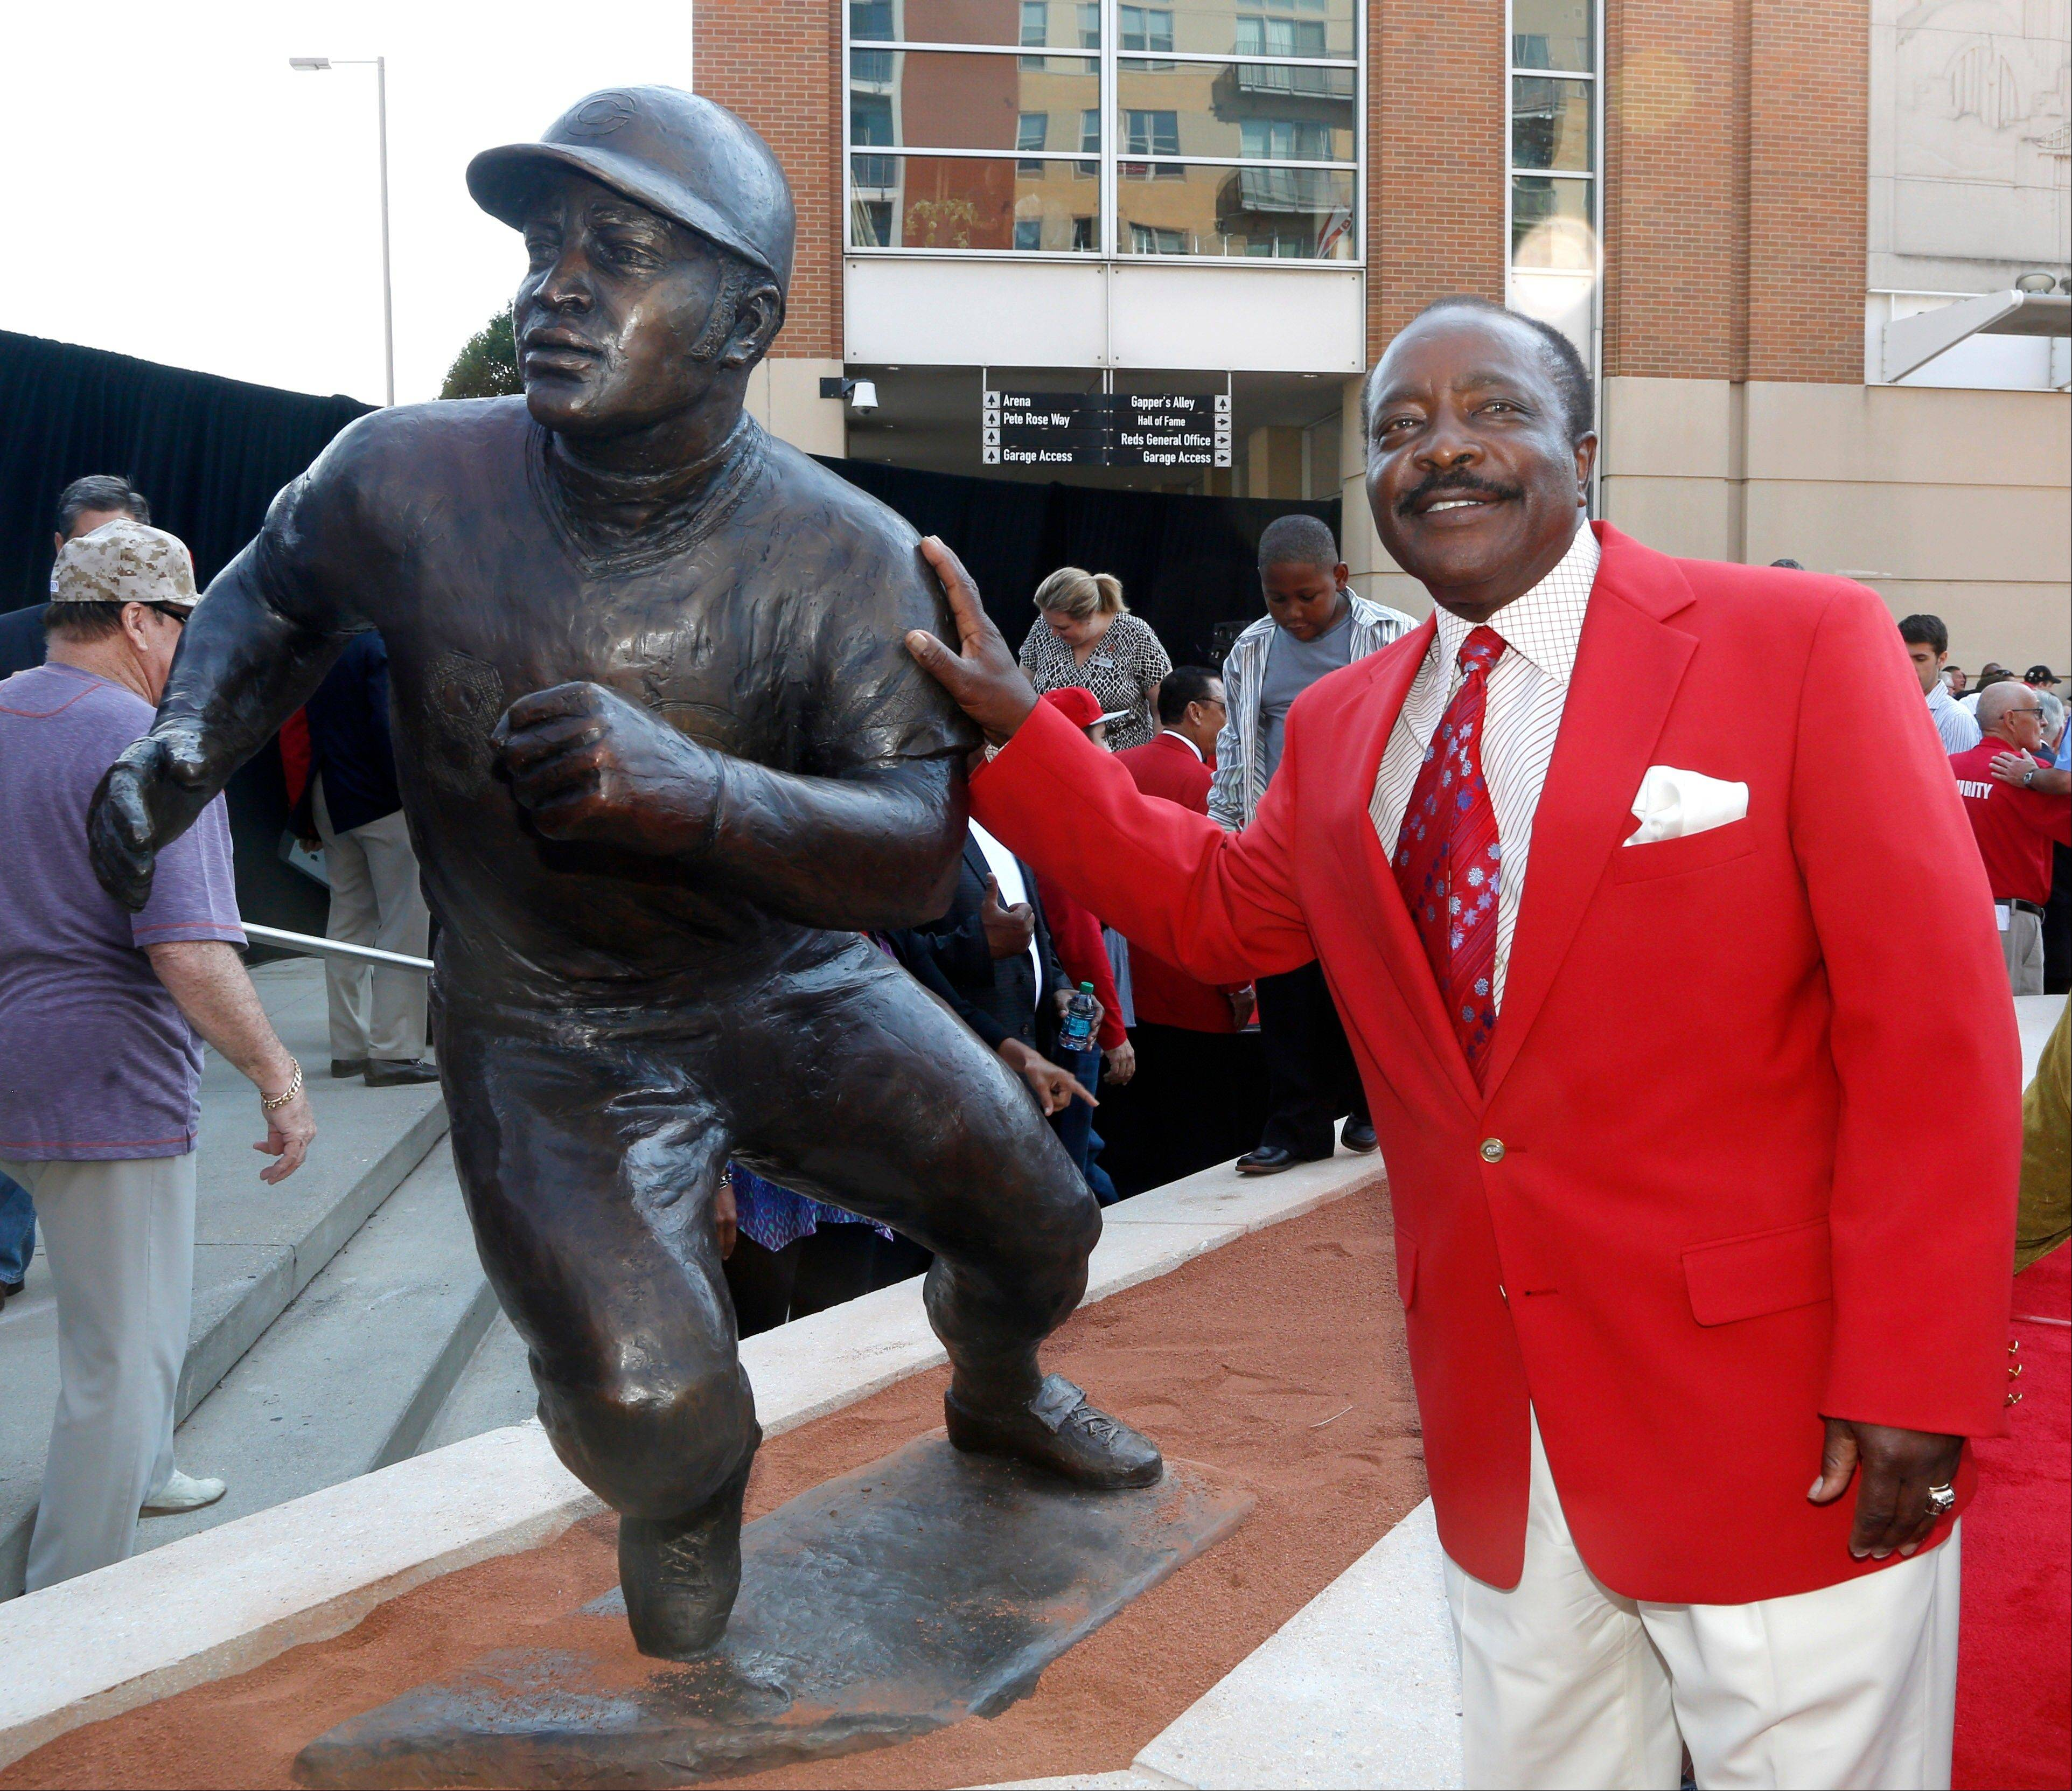 Hall of Fame second baseman Joe Morgan poses with his statue that was unveiled at Great American Ball Park on Saturday in Cincinnati.